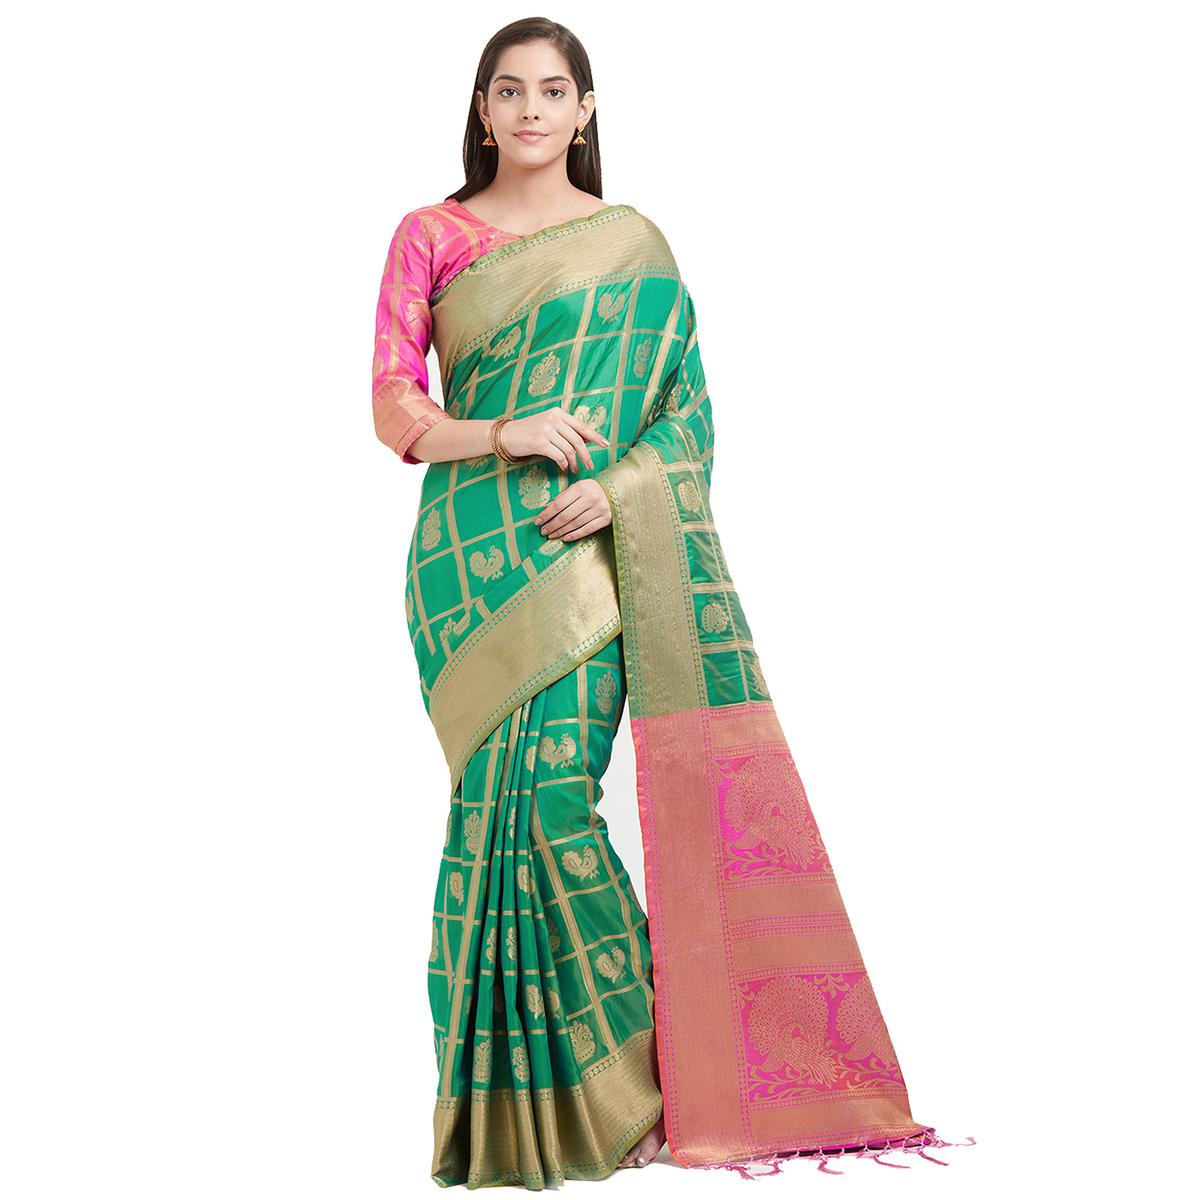 Exceptional Green Colored Festive Wear Woven Work Patola Silk Saree